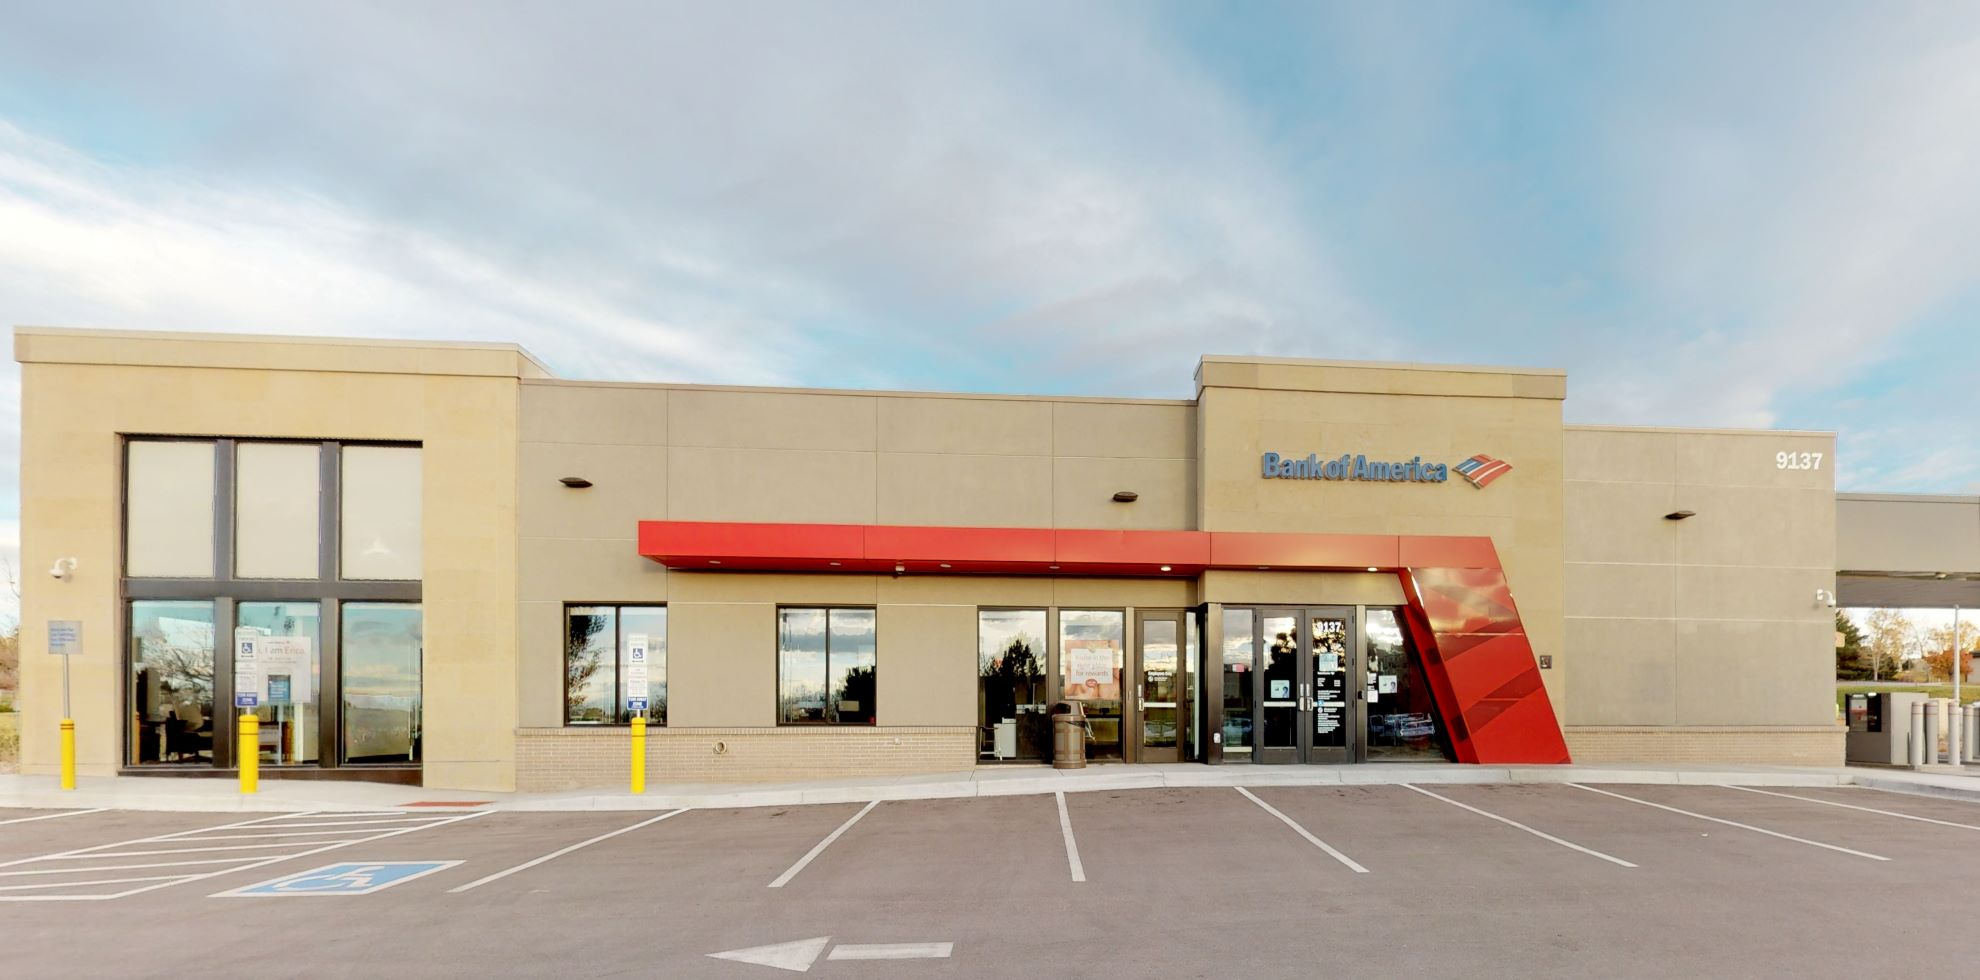 Bank of America financial center with drive-thru ATM   9137 Westview Rd, Lone Tree, CO 80124